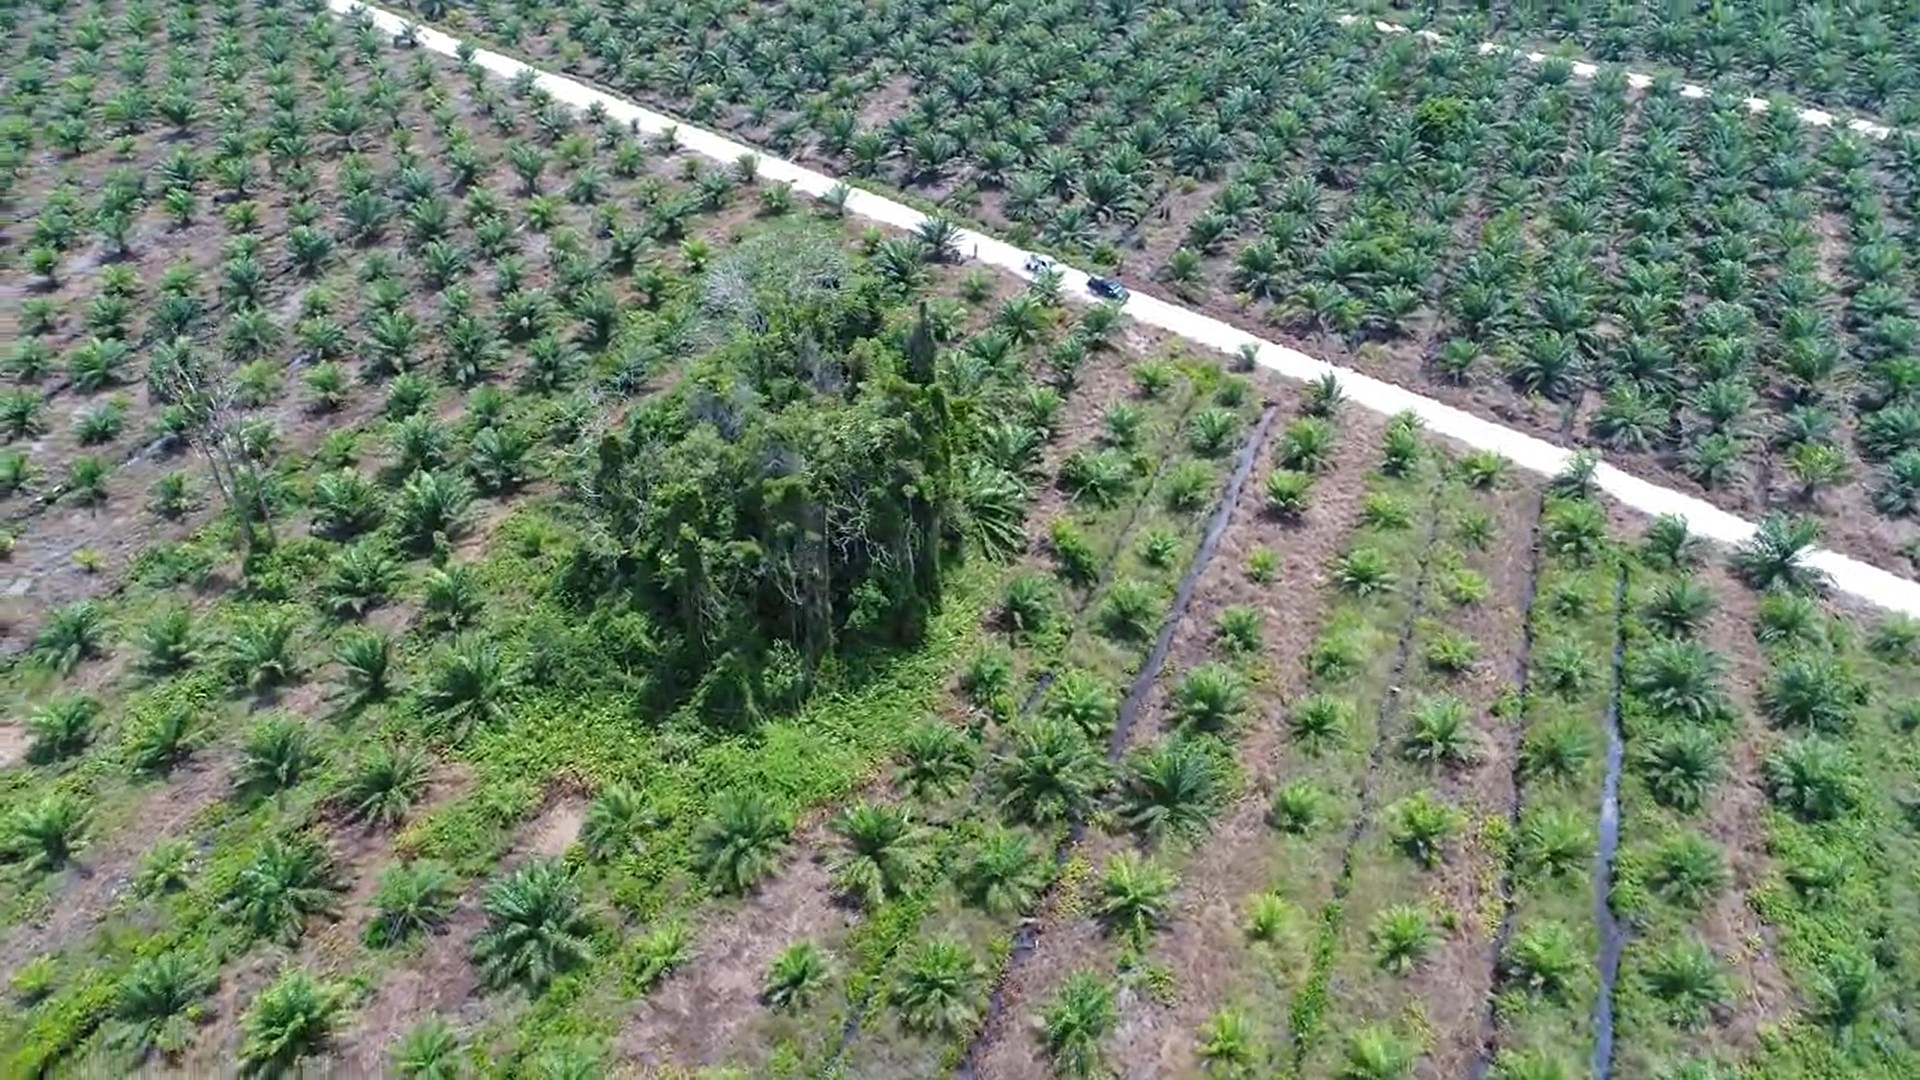 Oil palm plantation completely encompass the pair and their small fragment of forest